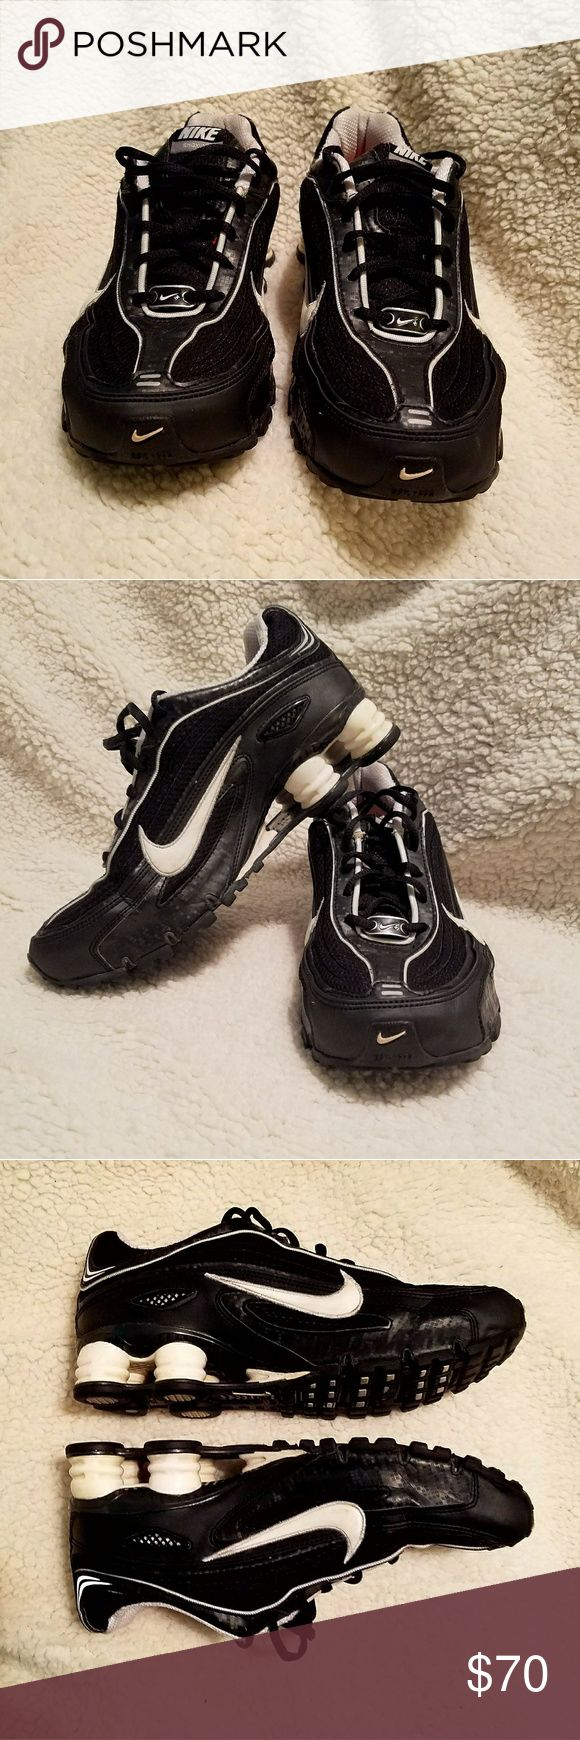 EUC Nike Shox Women's Sz 8 Pre-owned NIKE SHOX black and white in women's size 8. They are in excellent pre-owned condition with some very light signs of wear on the treads -  see photos. These shoes are super comfy and have a lot life left in them. Don't miss out on these! Nike Shoes Athletic Shoes